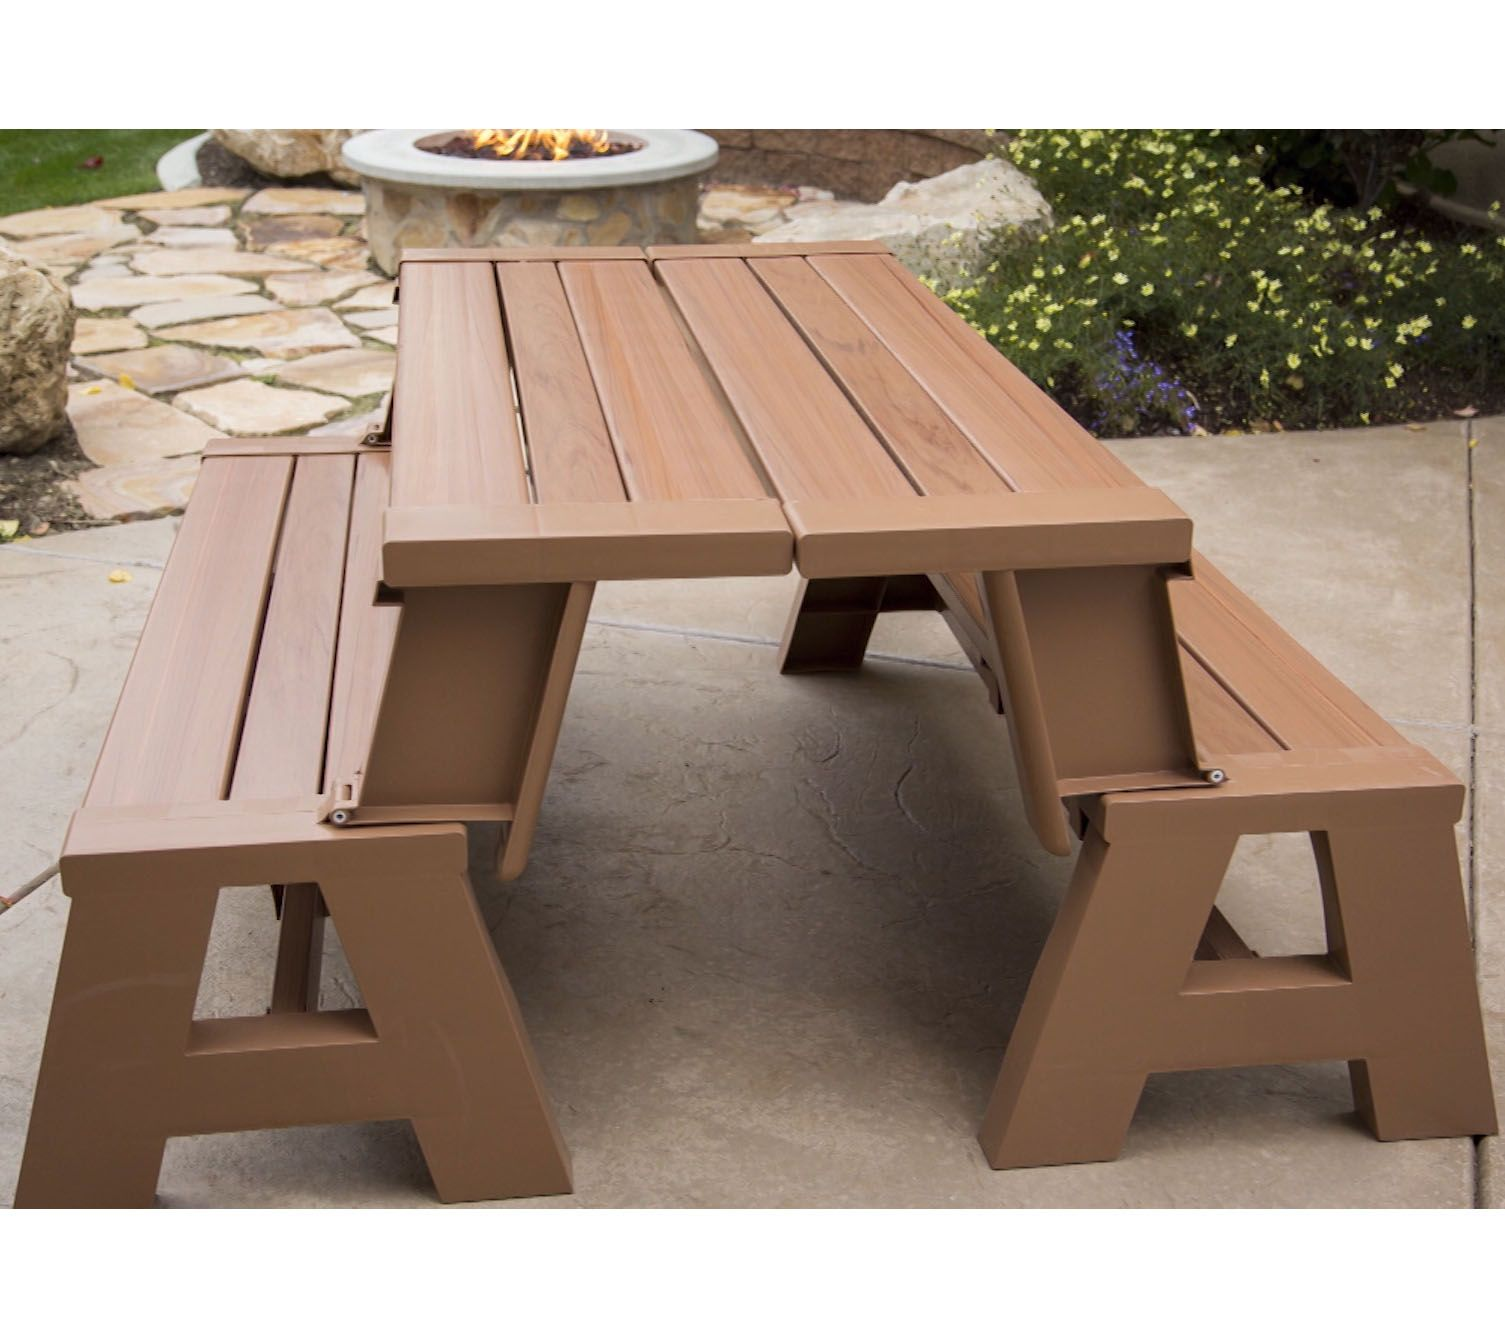 Garden Furniture Qvc convert-a-bench faux wood outdoor 2-in-1 bench-to-table w/ 5 year